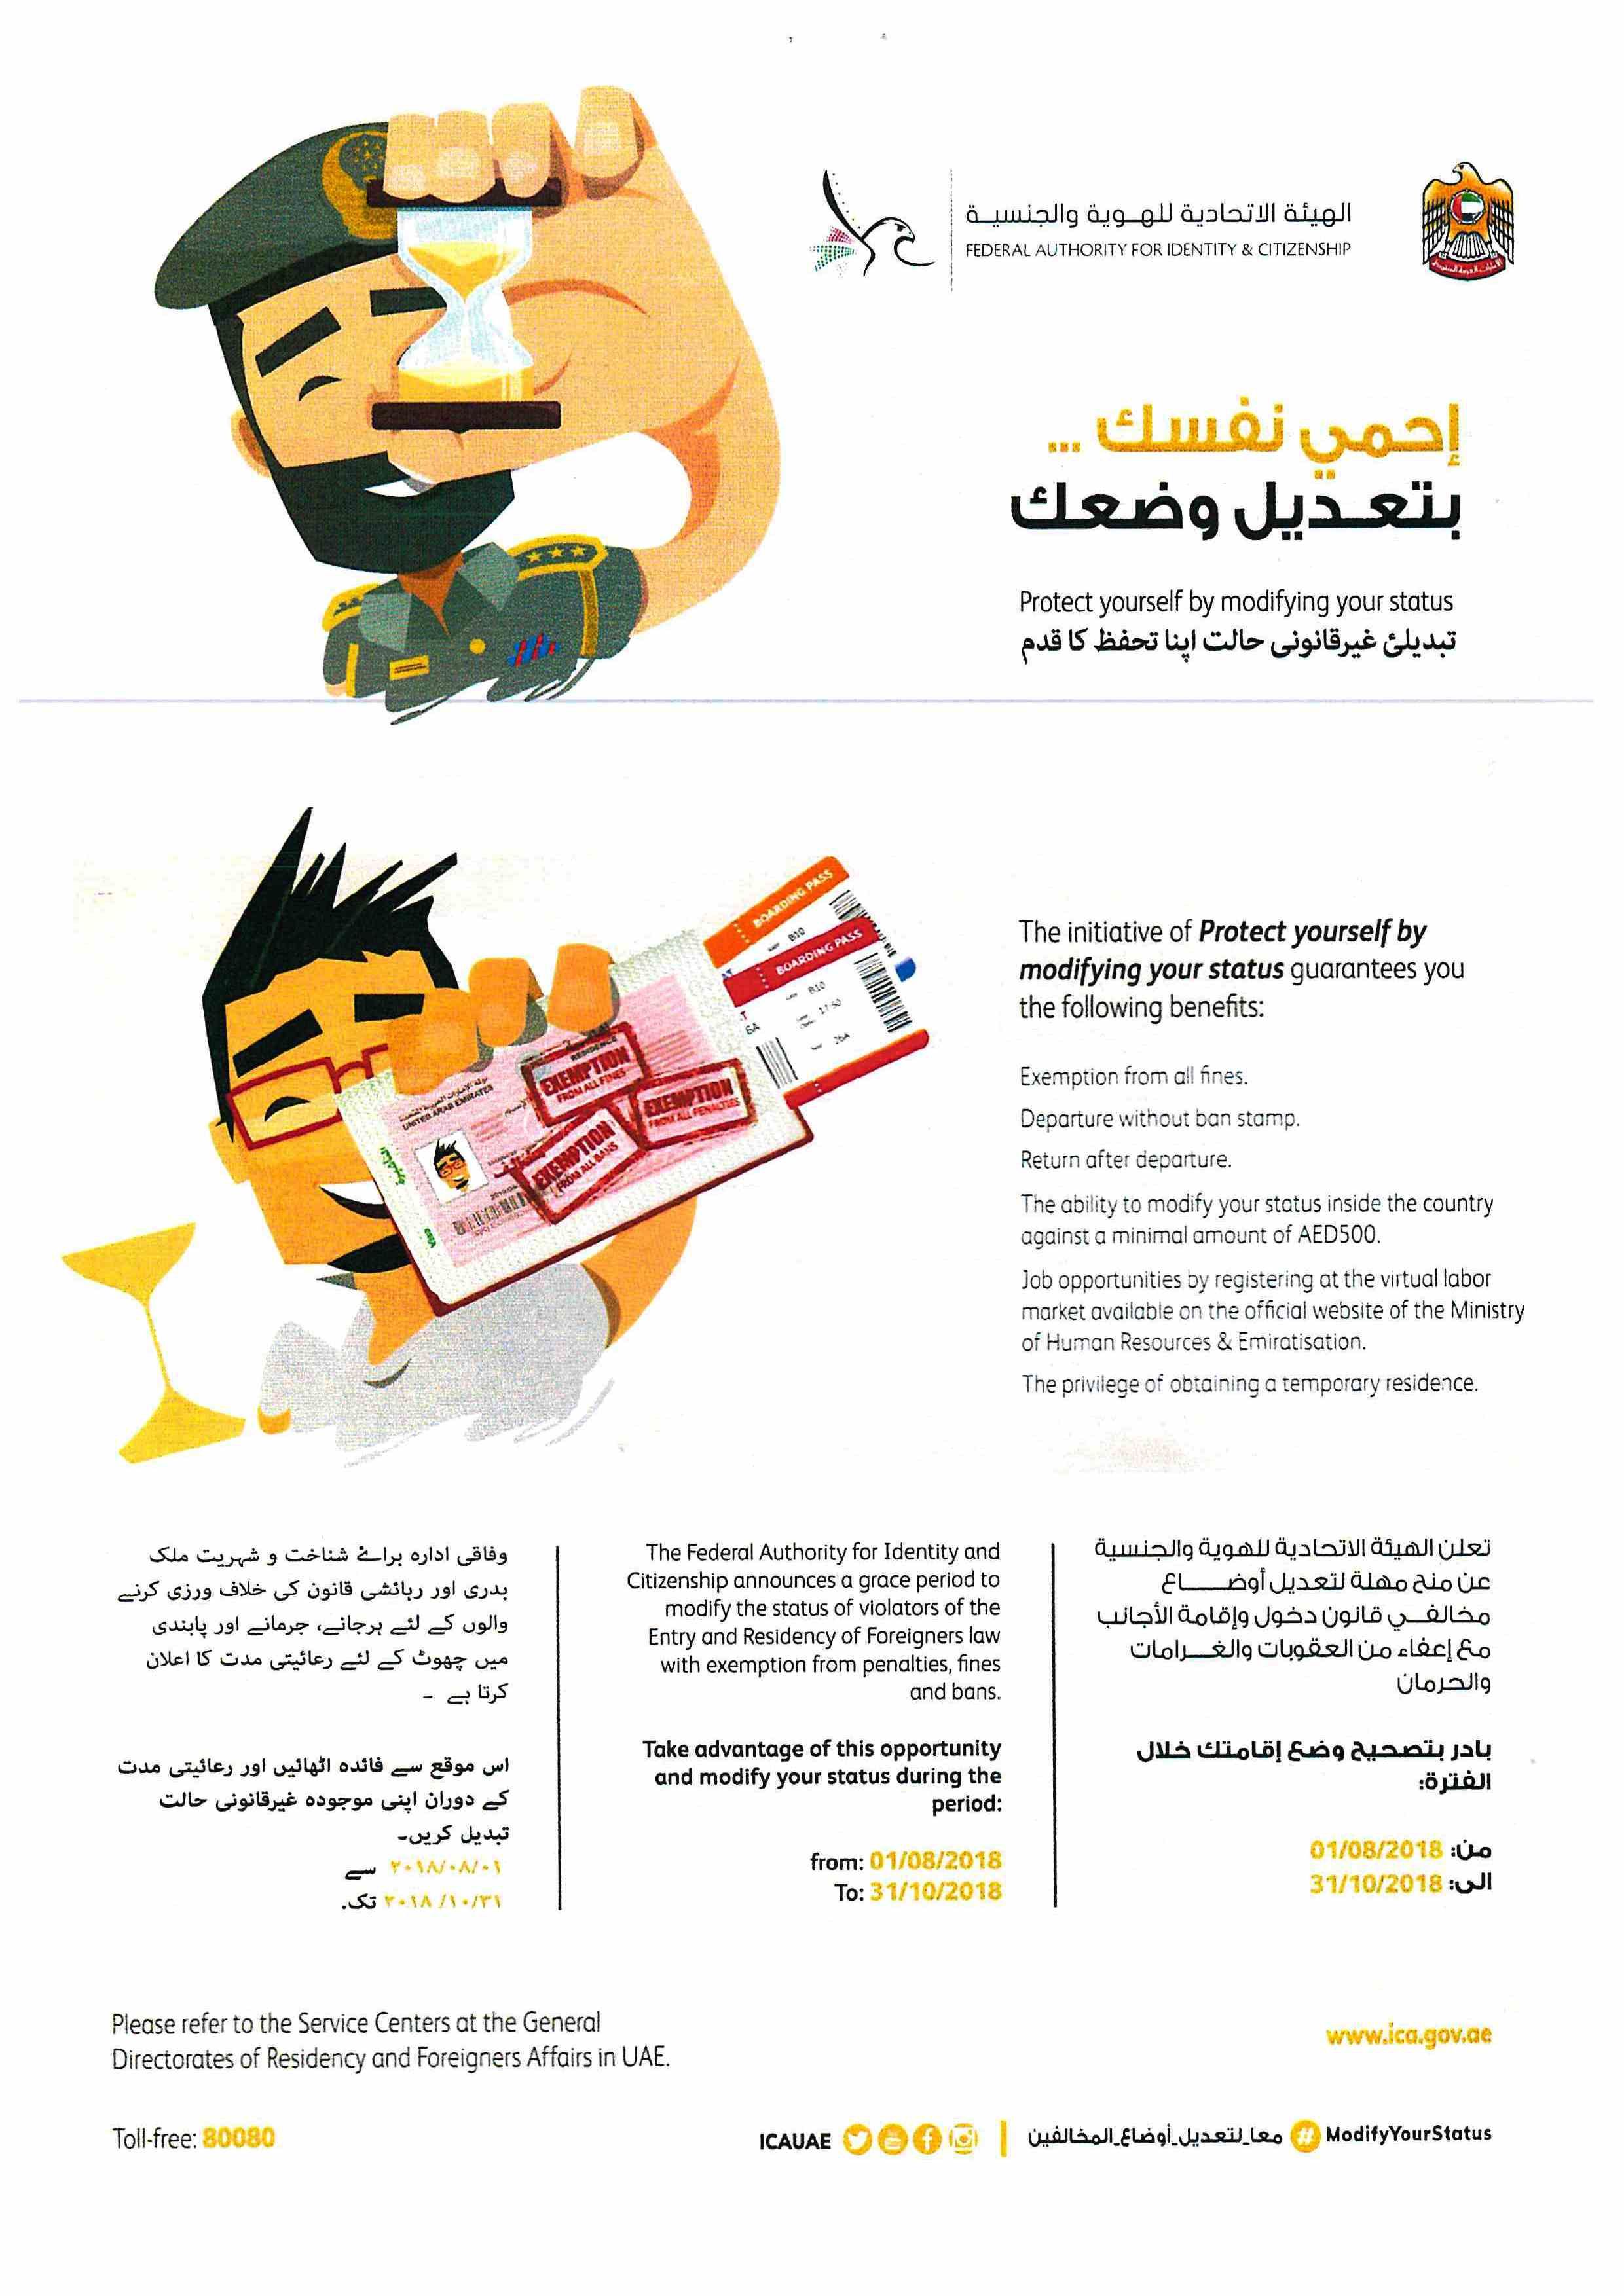 UAE Amnesty Protect Yourself by Modifying Your Visa Status Starts August 1